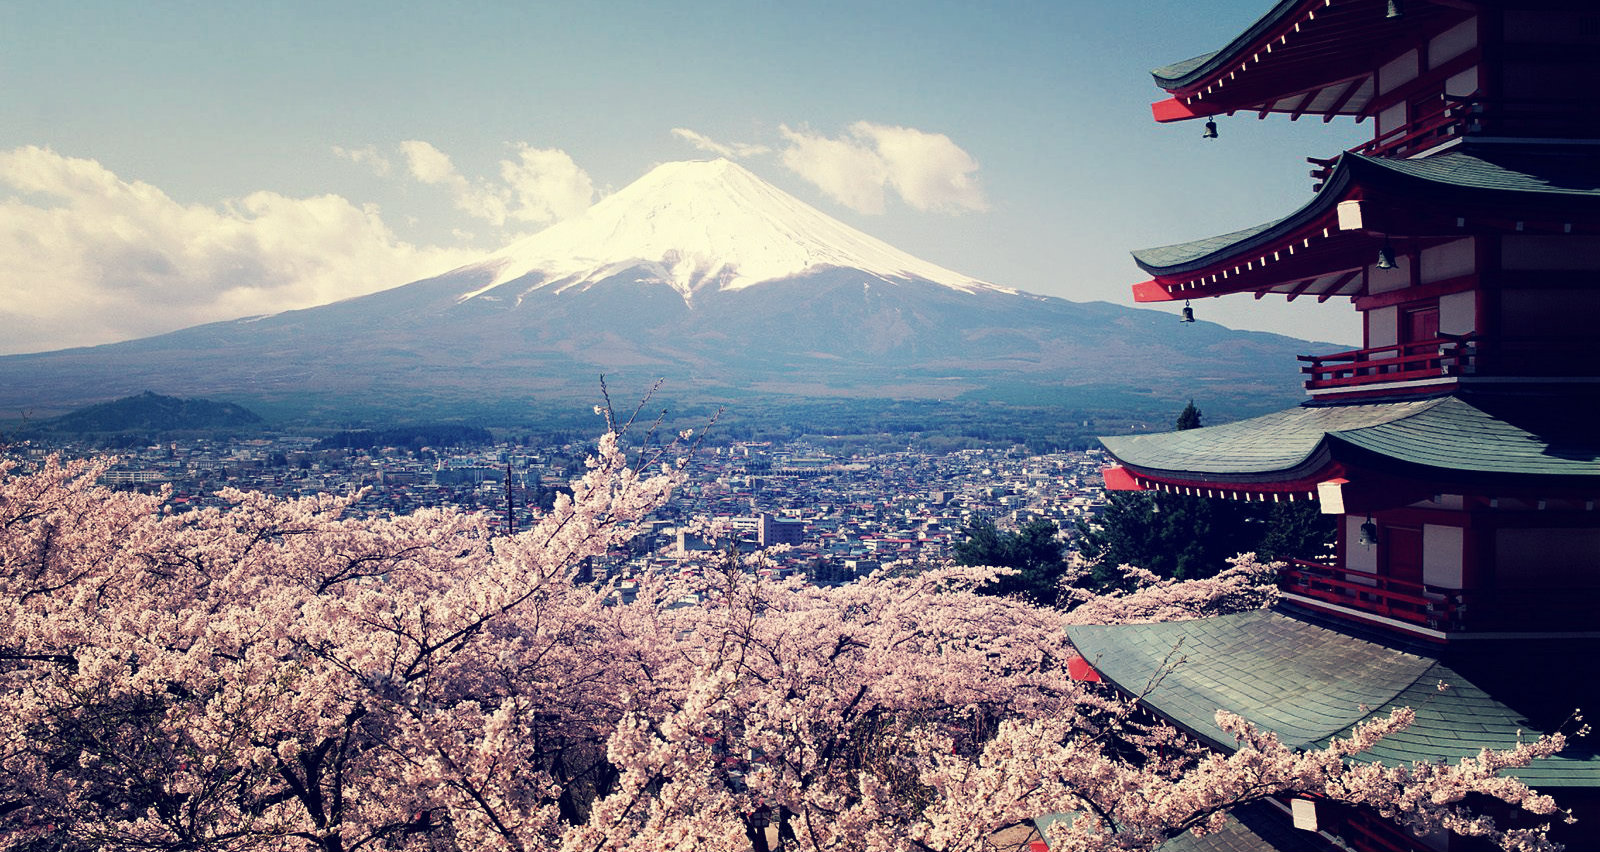 An image of Mt Fuji and ancient Japanese Home